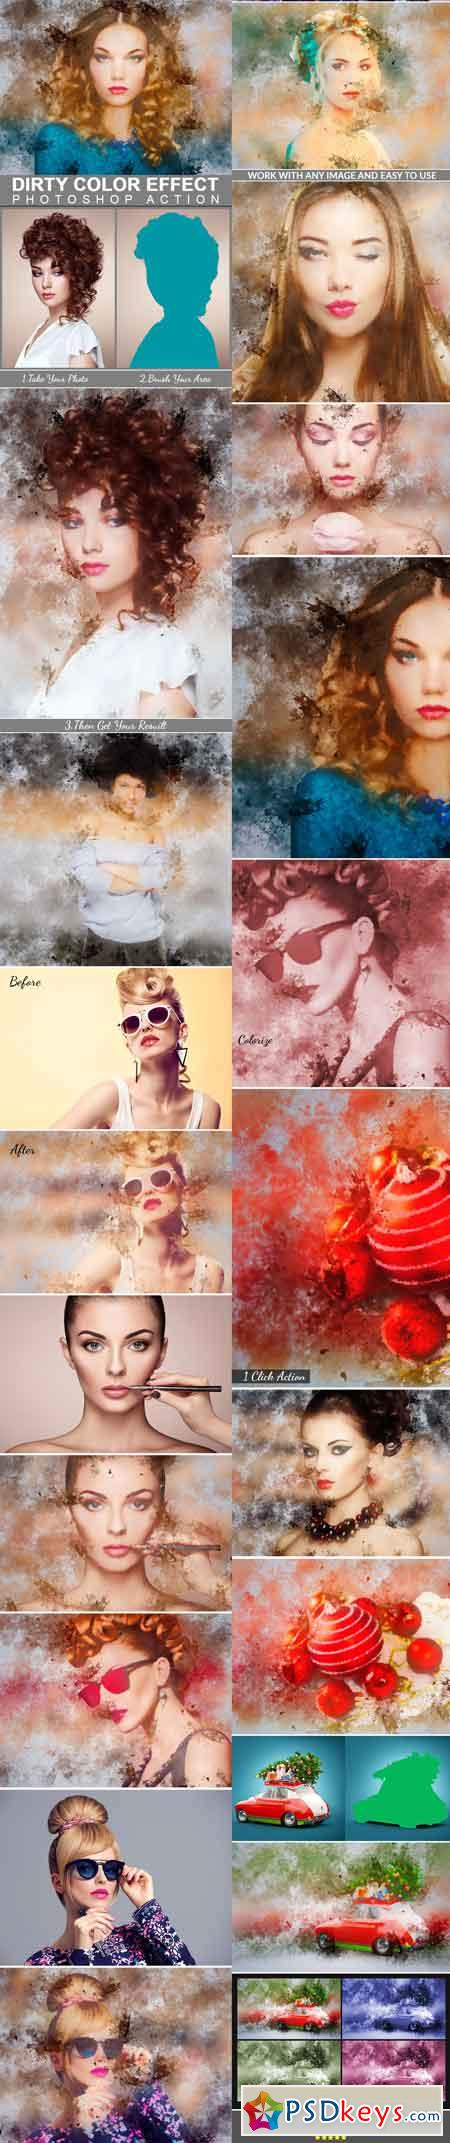 Dirty Color Effect Photoshop Action 22563994